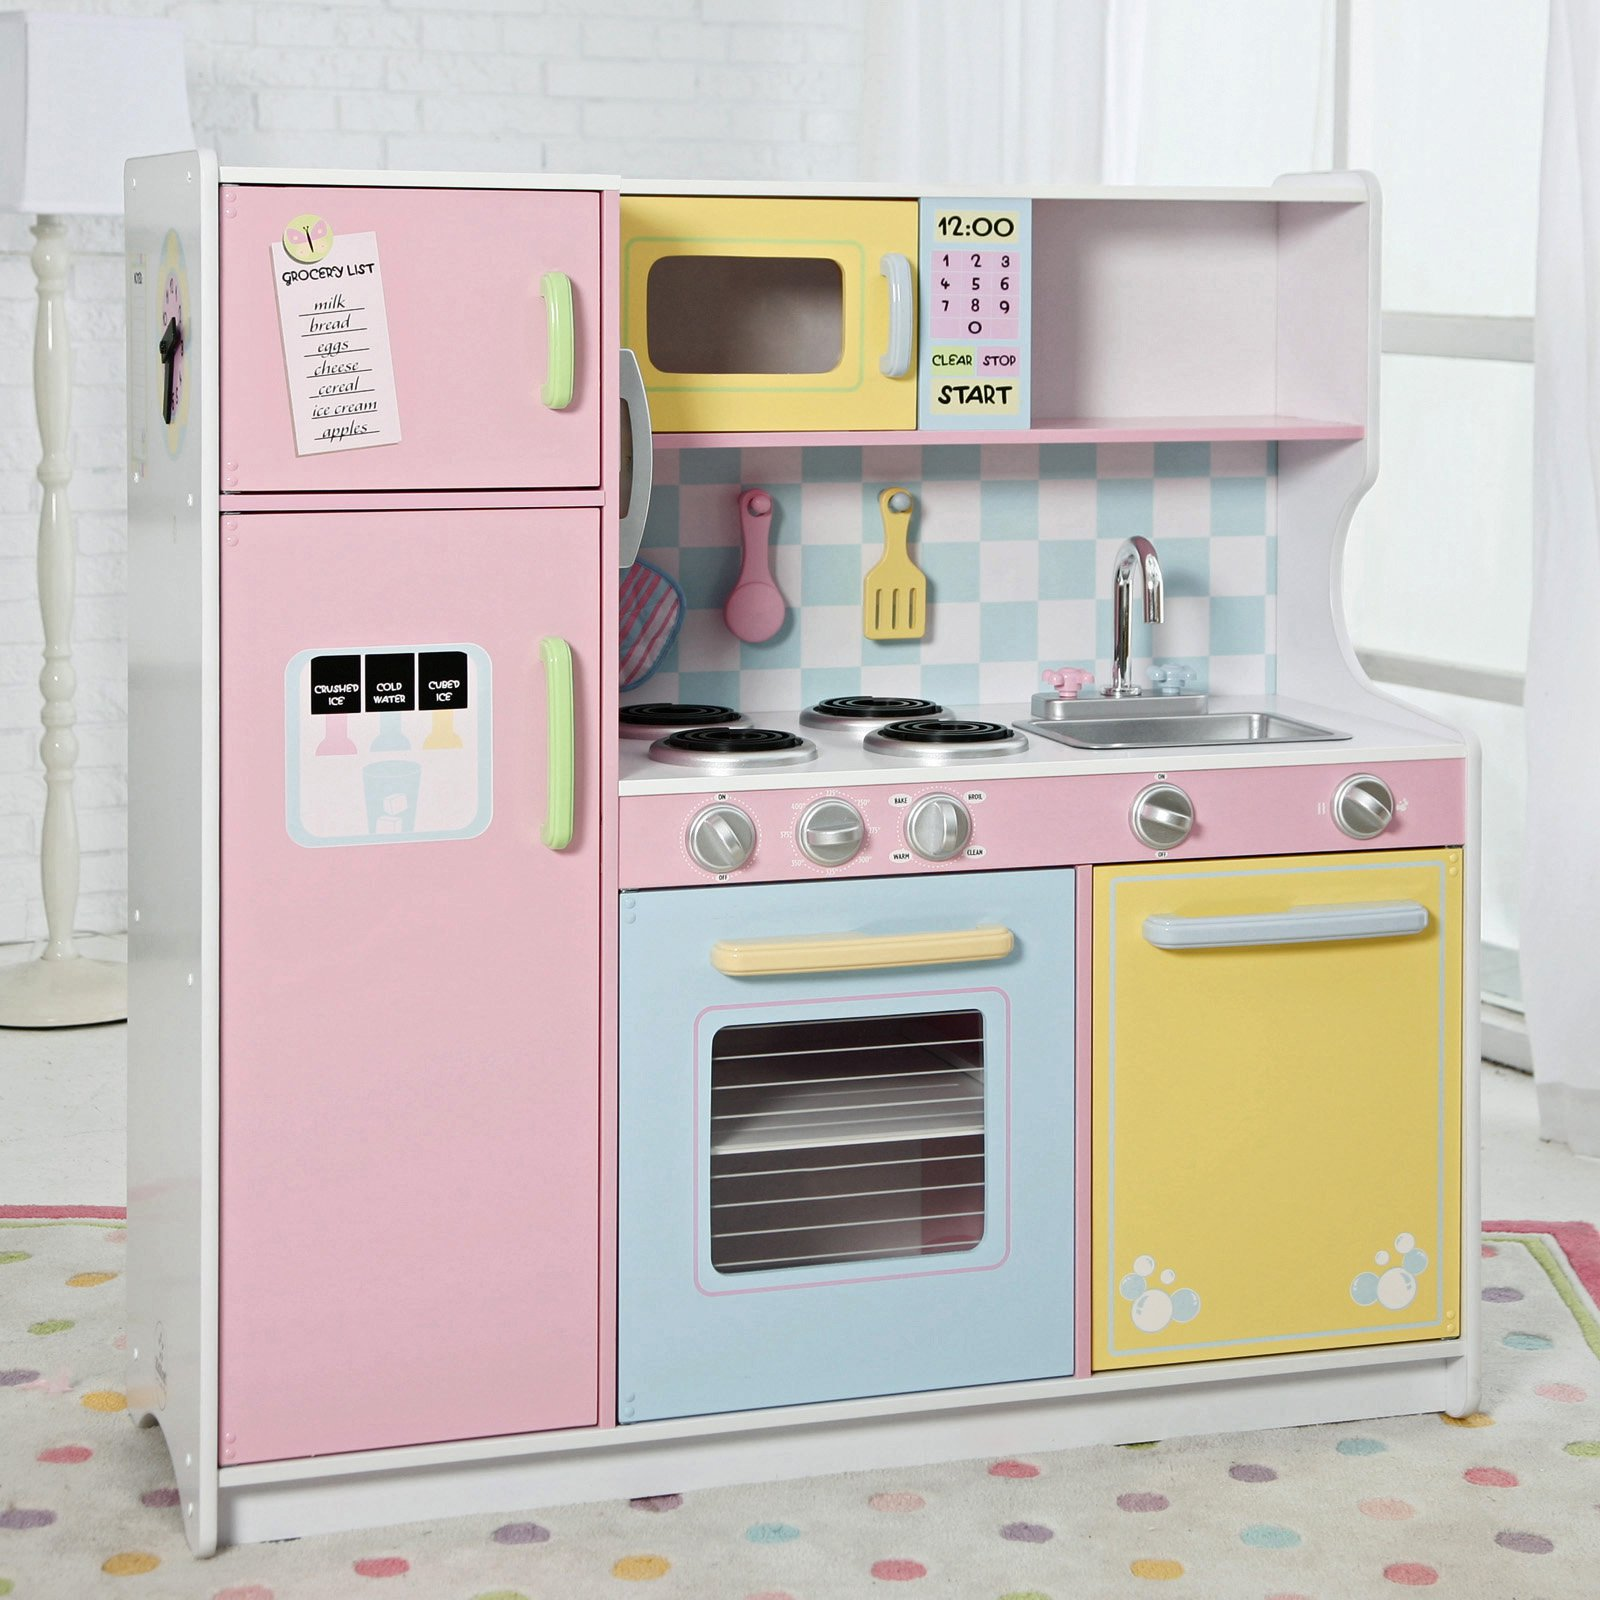 Kitchen Set For New Home: Good Wood Play Kitchen Sets